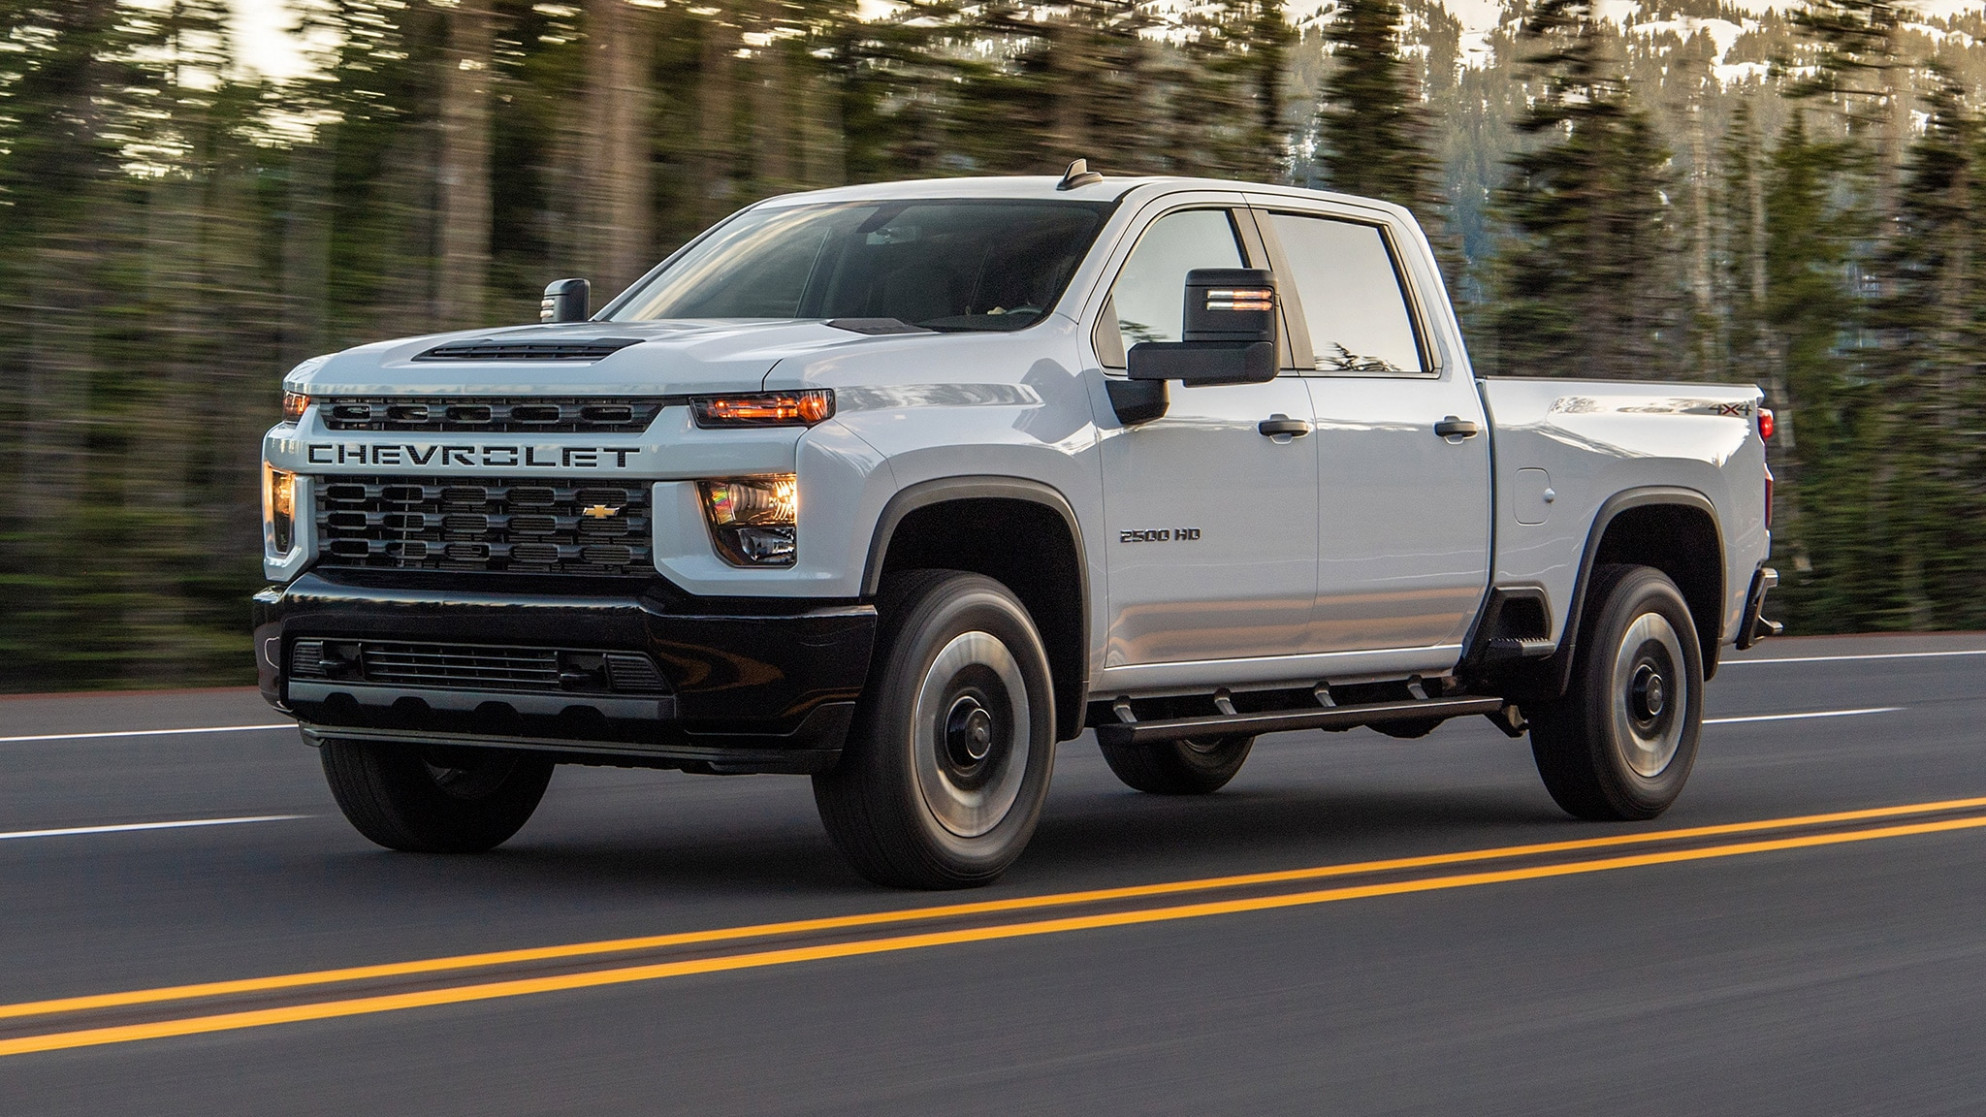 10 Chevrolet Silverado 10HD/10HD First Drive: Heavy Lifter - chevrolet pickup 2020